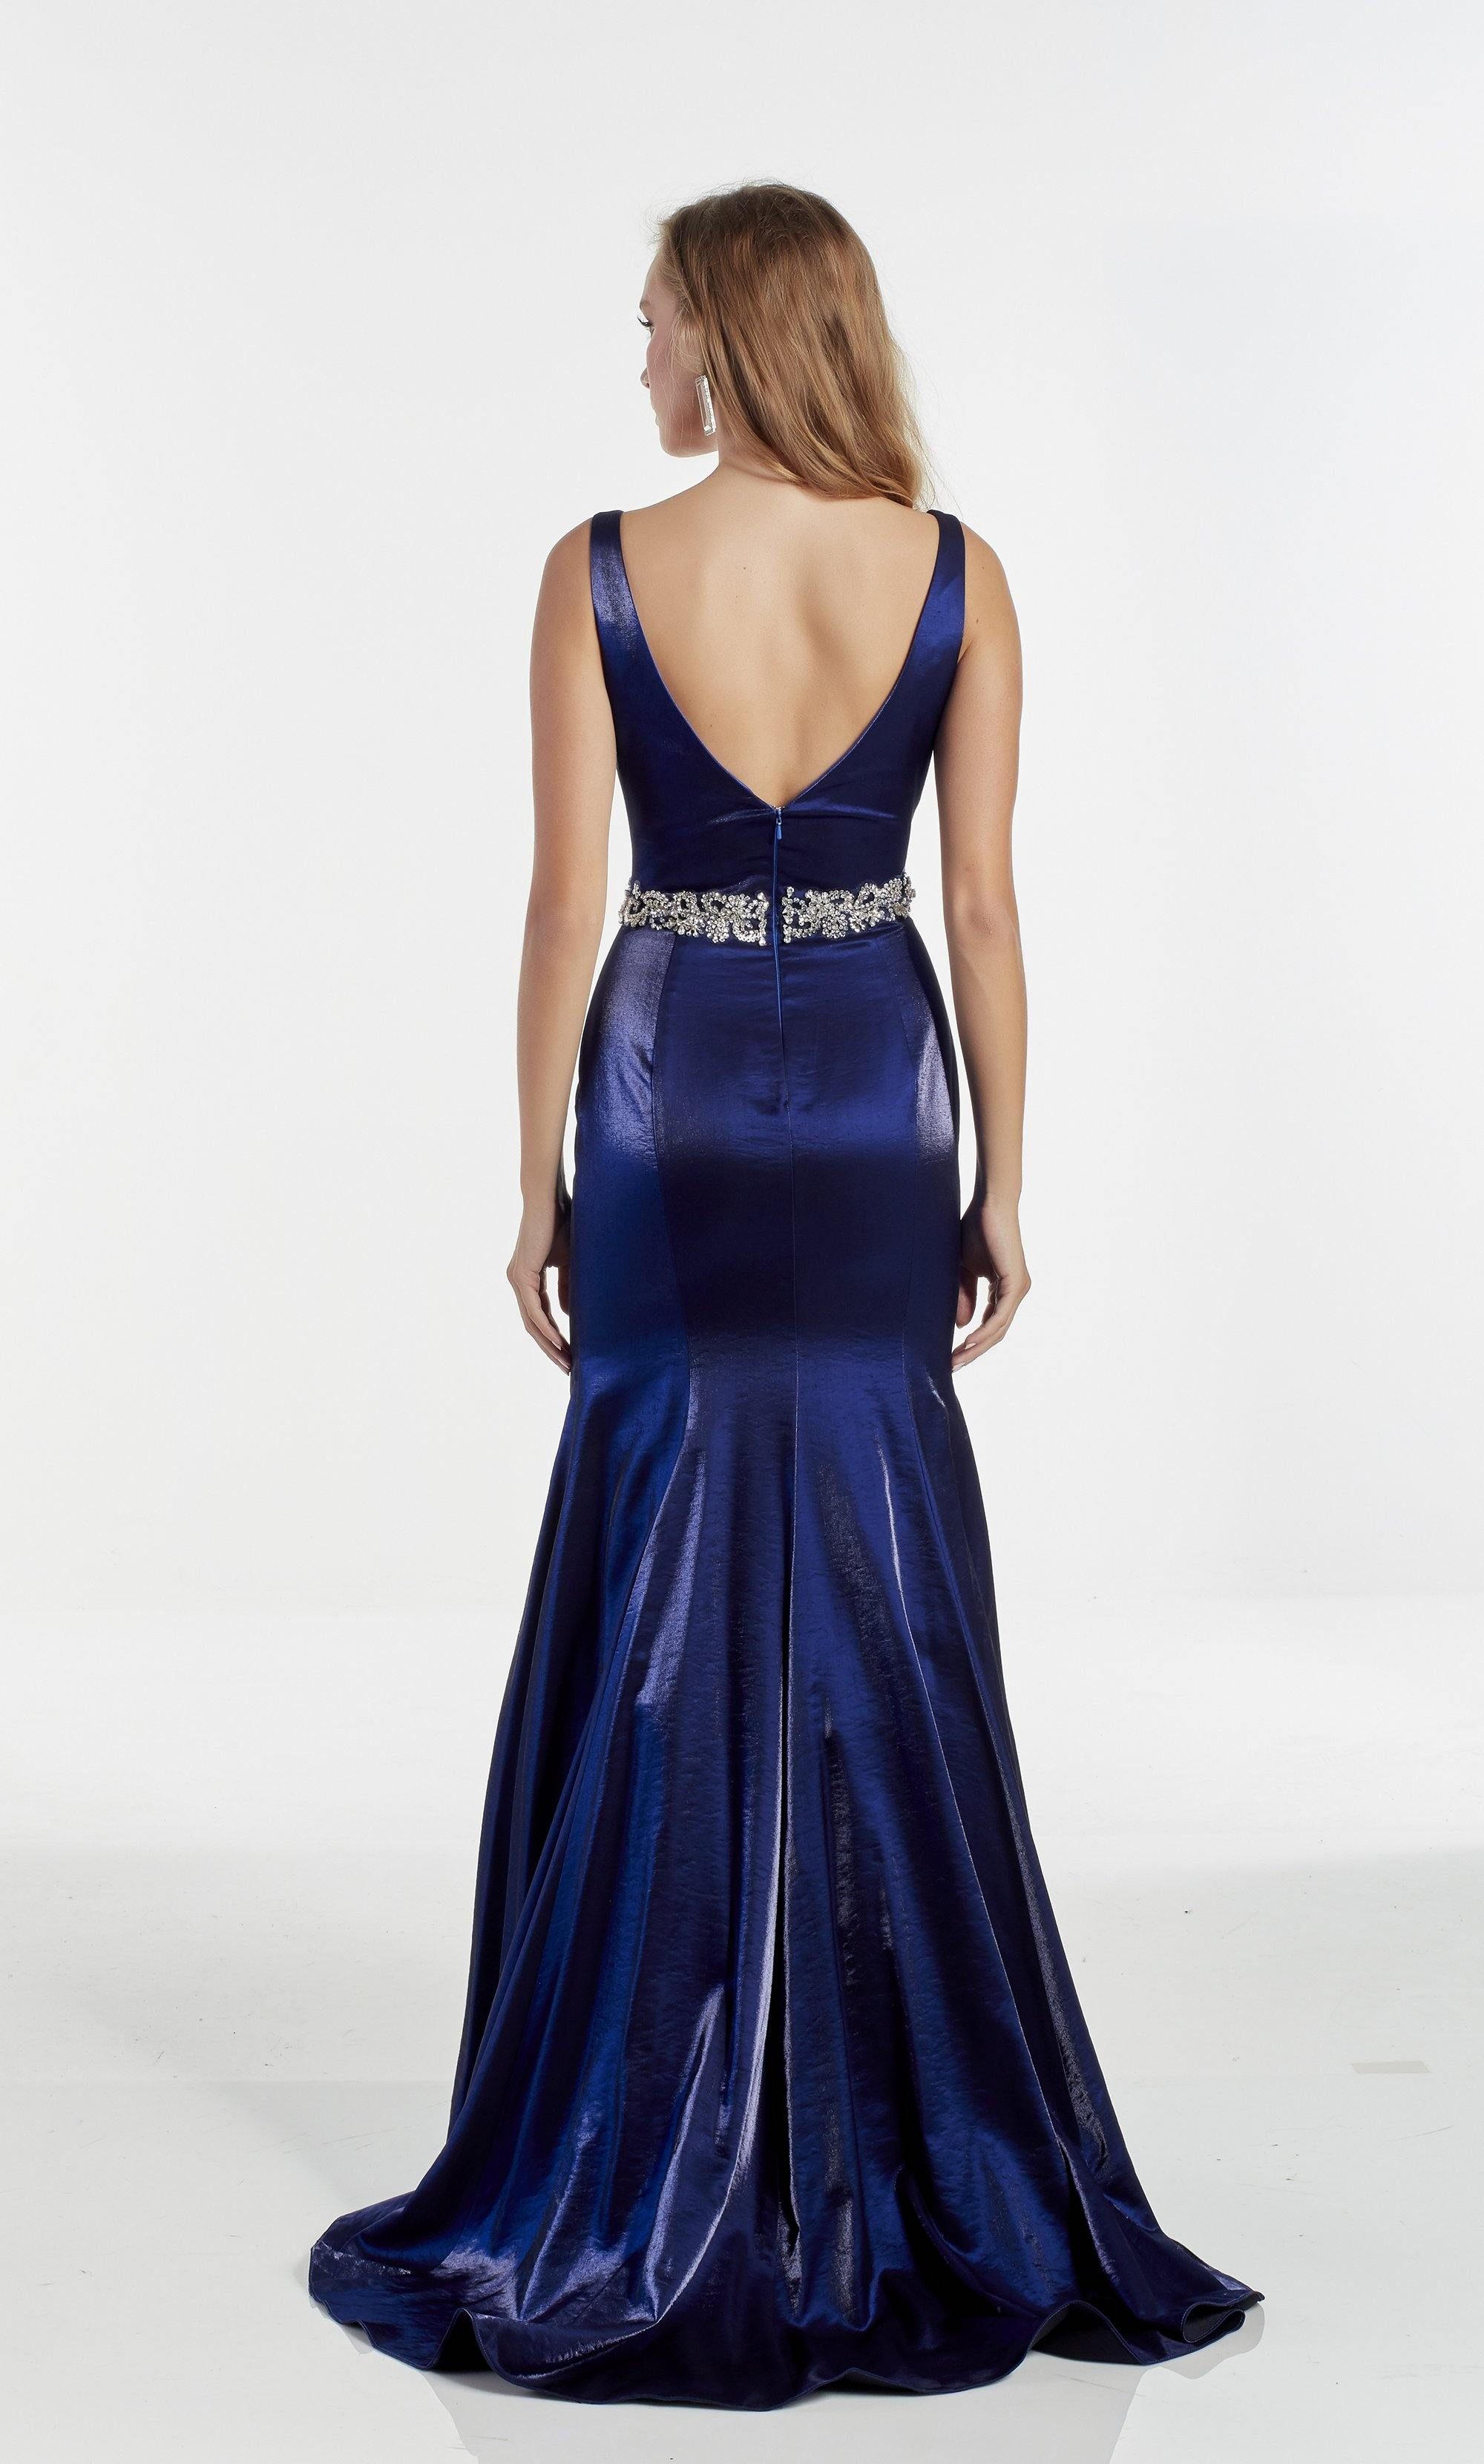 Navy shimmer satin formal dress with a V neckline and jewel embellished waistline